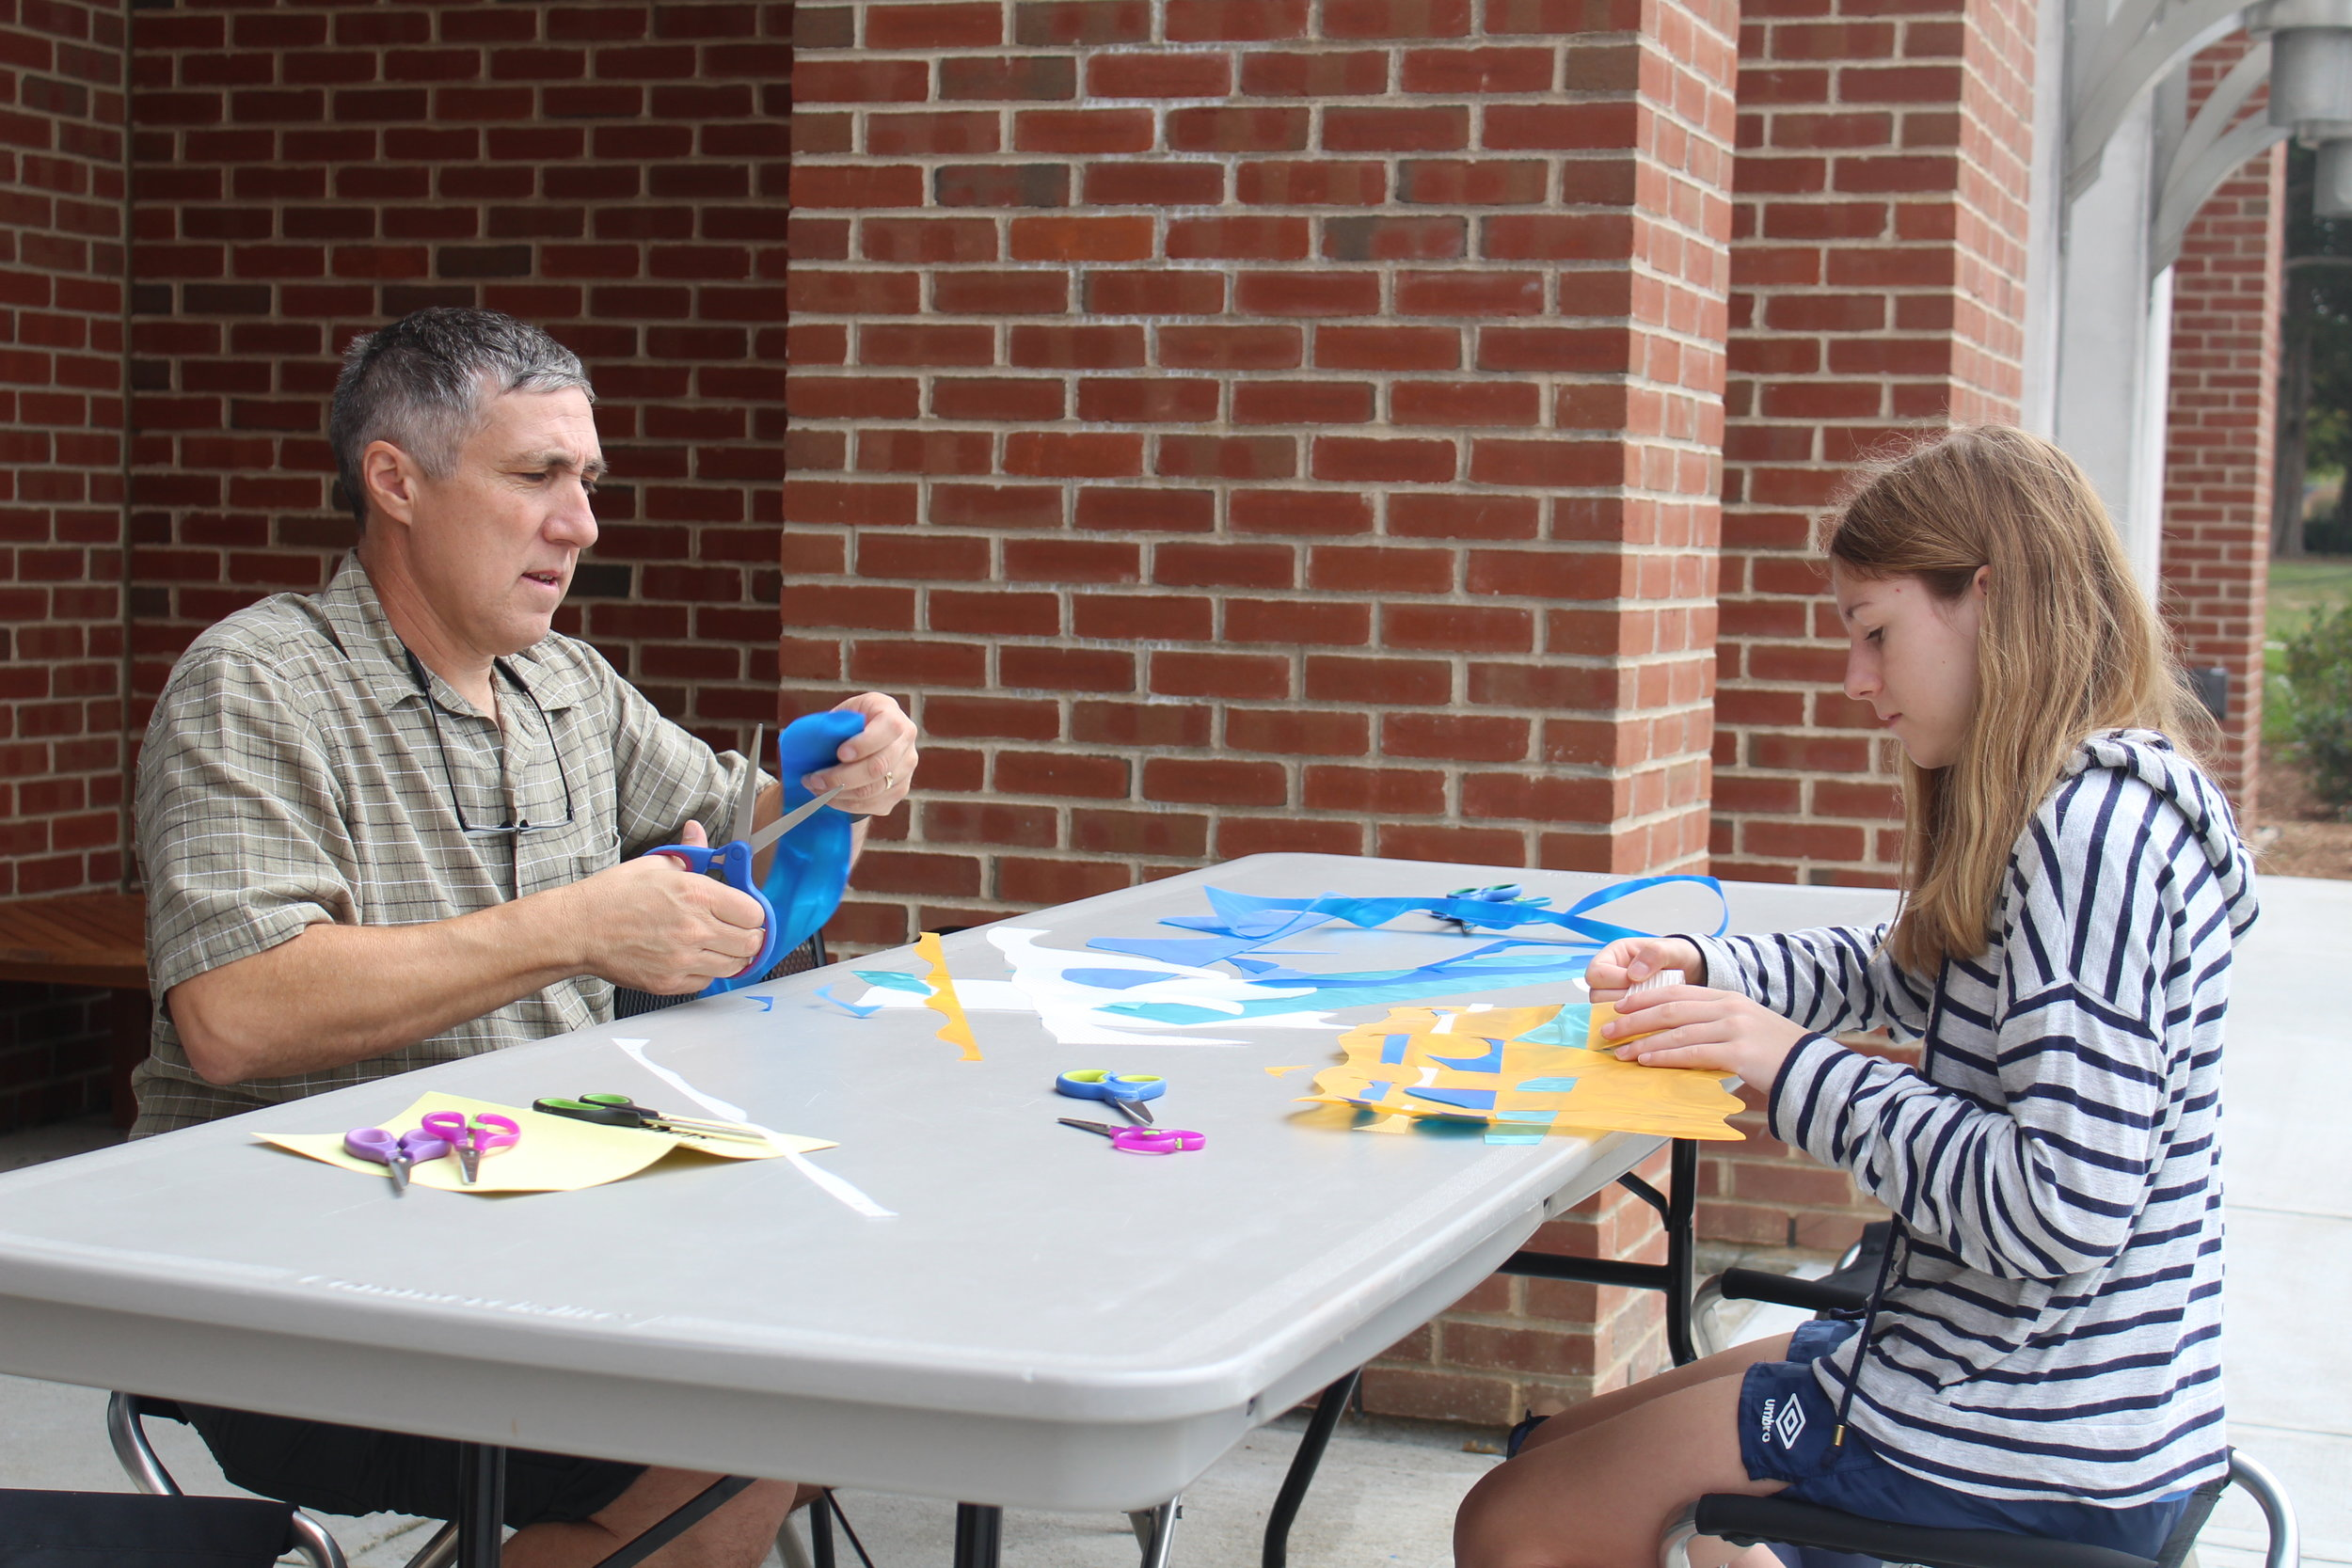 Families created waves for artists Susan Hoffman Fishman and Elena Kalman's interactive public art project, The Wave, celebrating water on Saturday, Oct. 7 for Family Weekend at the William Benton Museum of Art. (Kim Nguyen/The Daily Campus)